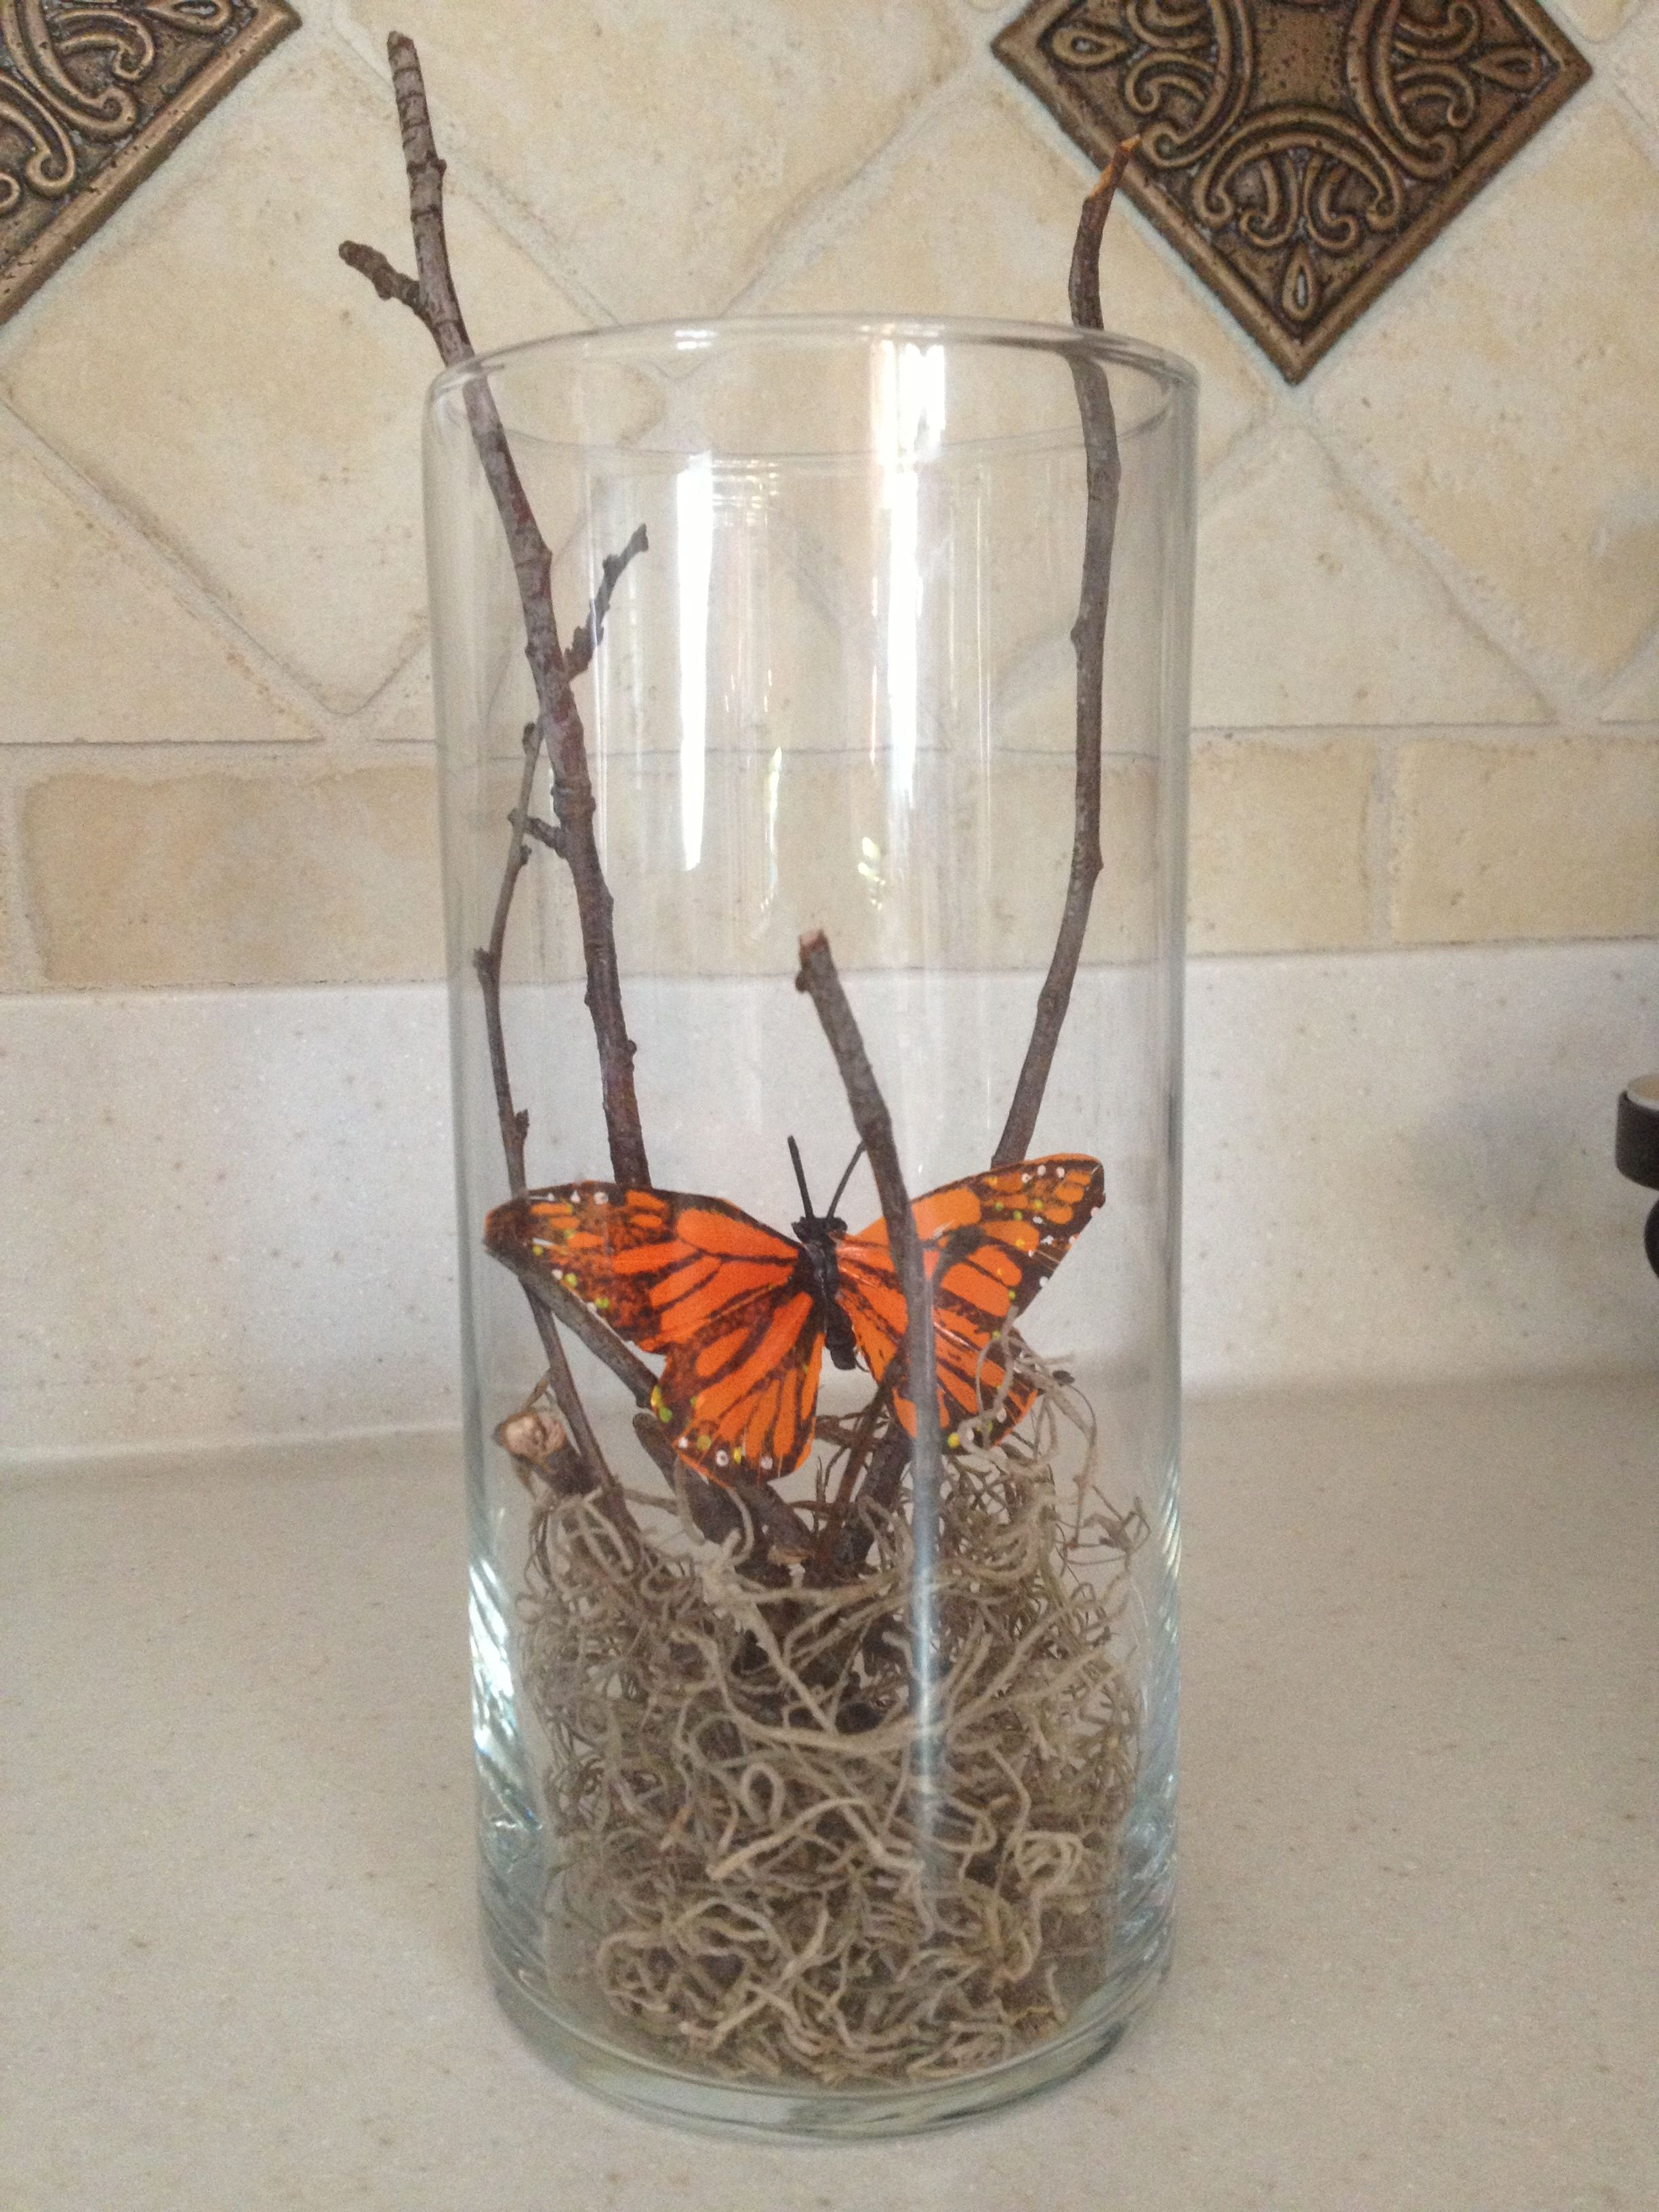 Cheap Spring Decorations: Cute Simple Cheap DIY Spring Decor! Dollar Store Vase